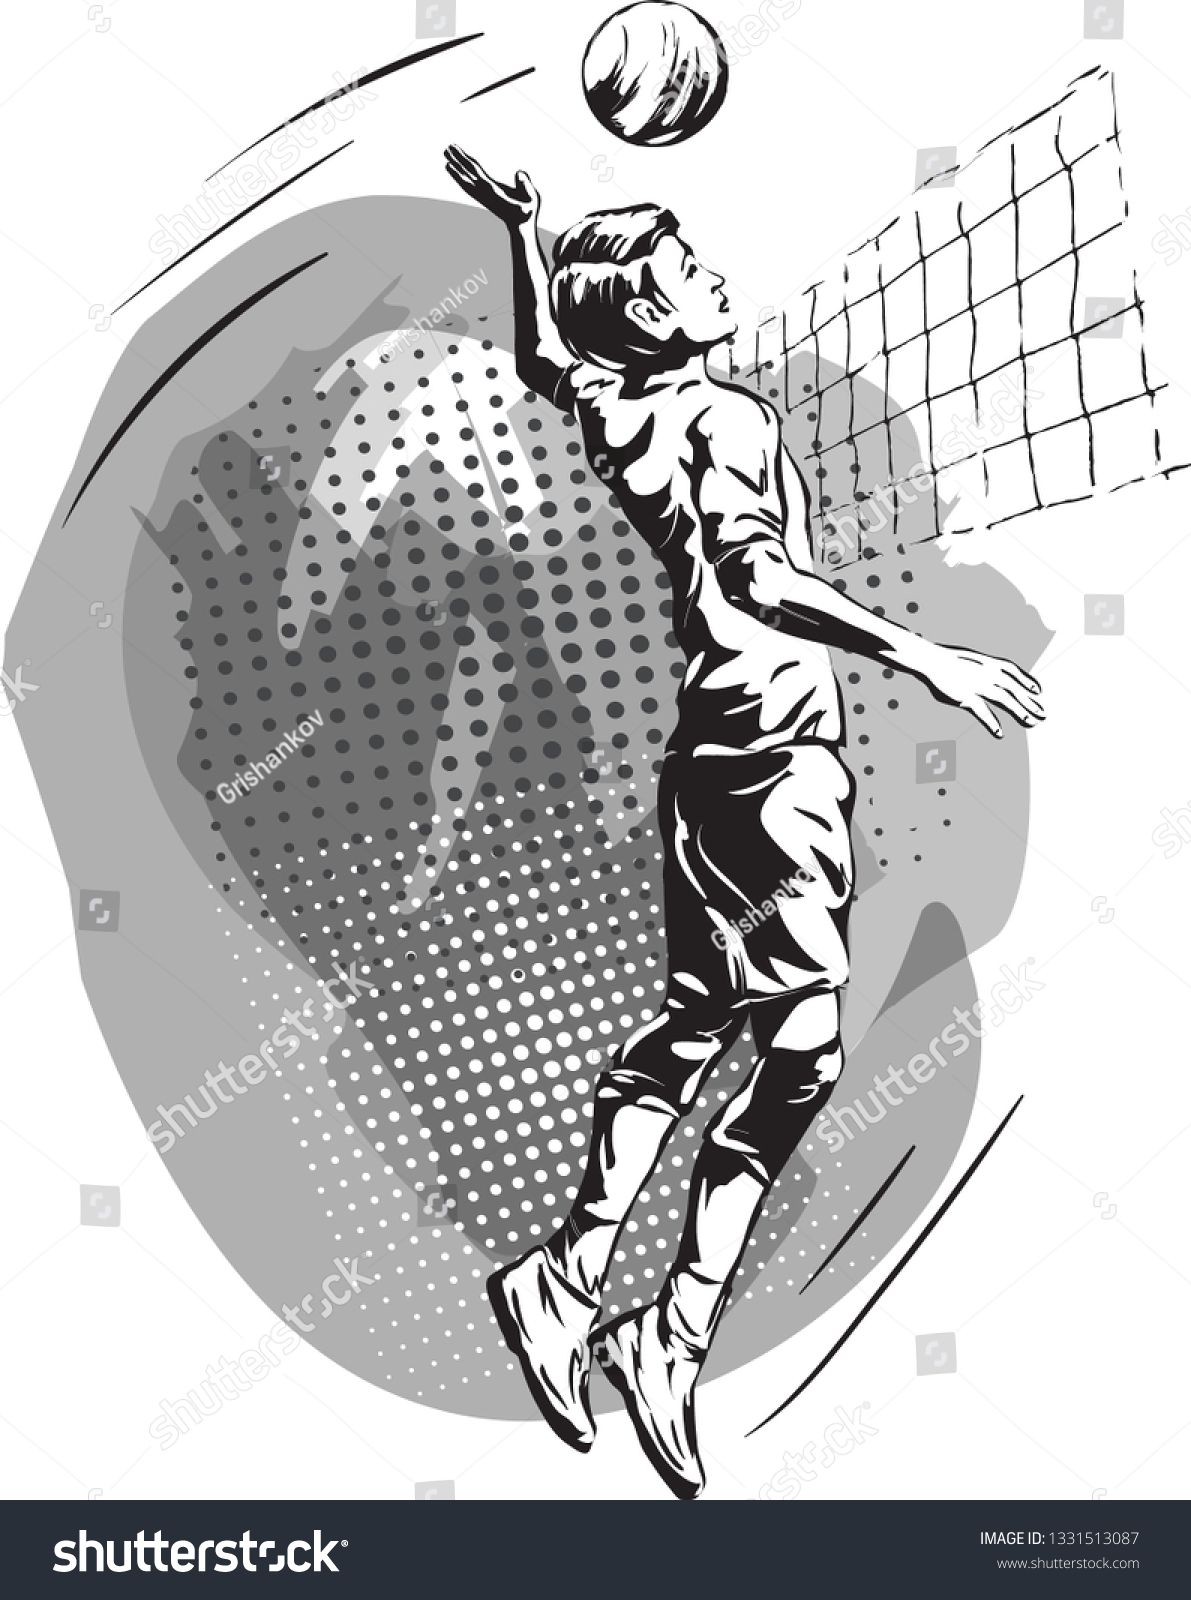 Black And White Image Of A Young Man Playing Volleyball Vector Drawing By Hand Ad Ad Young Man Image Black Man Images Vector Drawing White Image